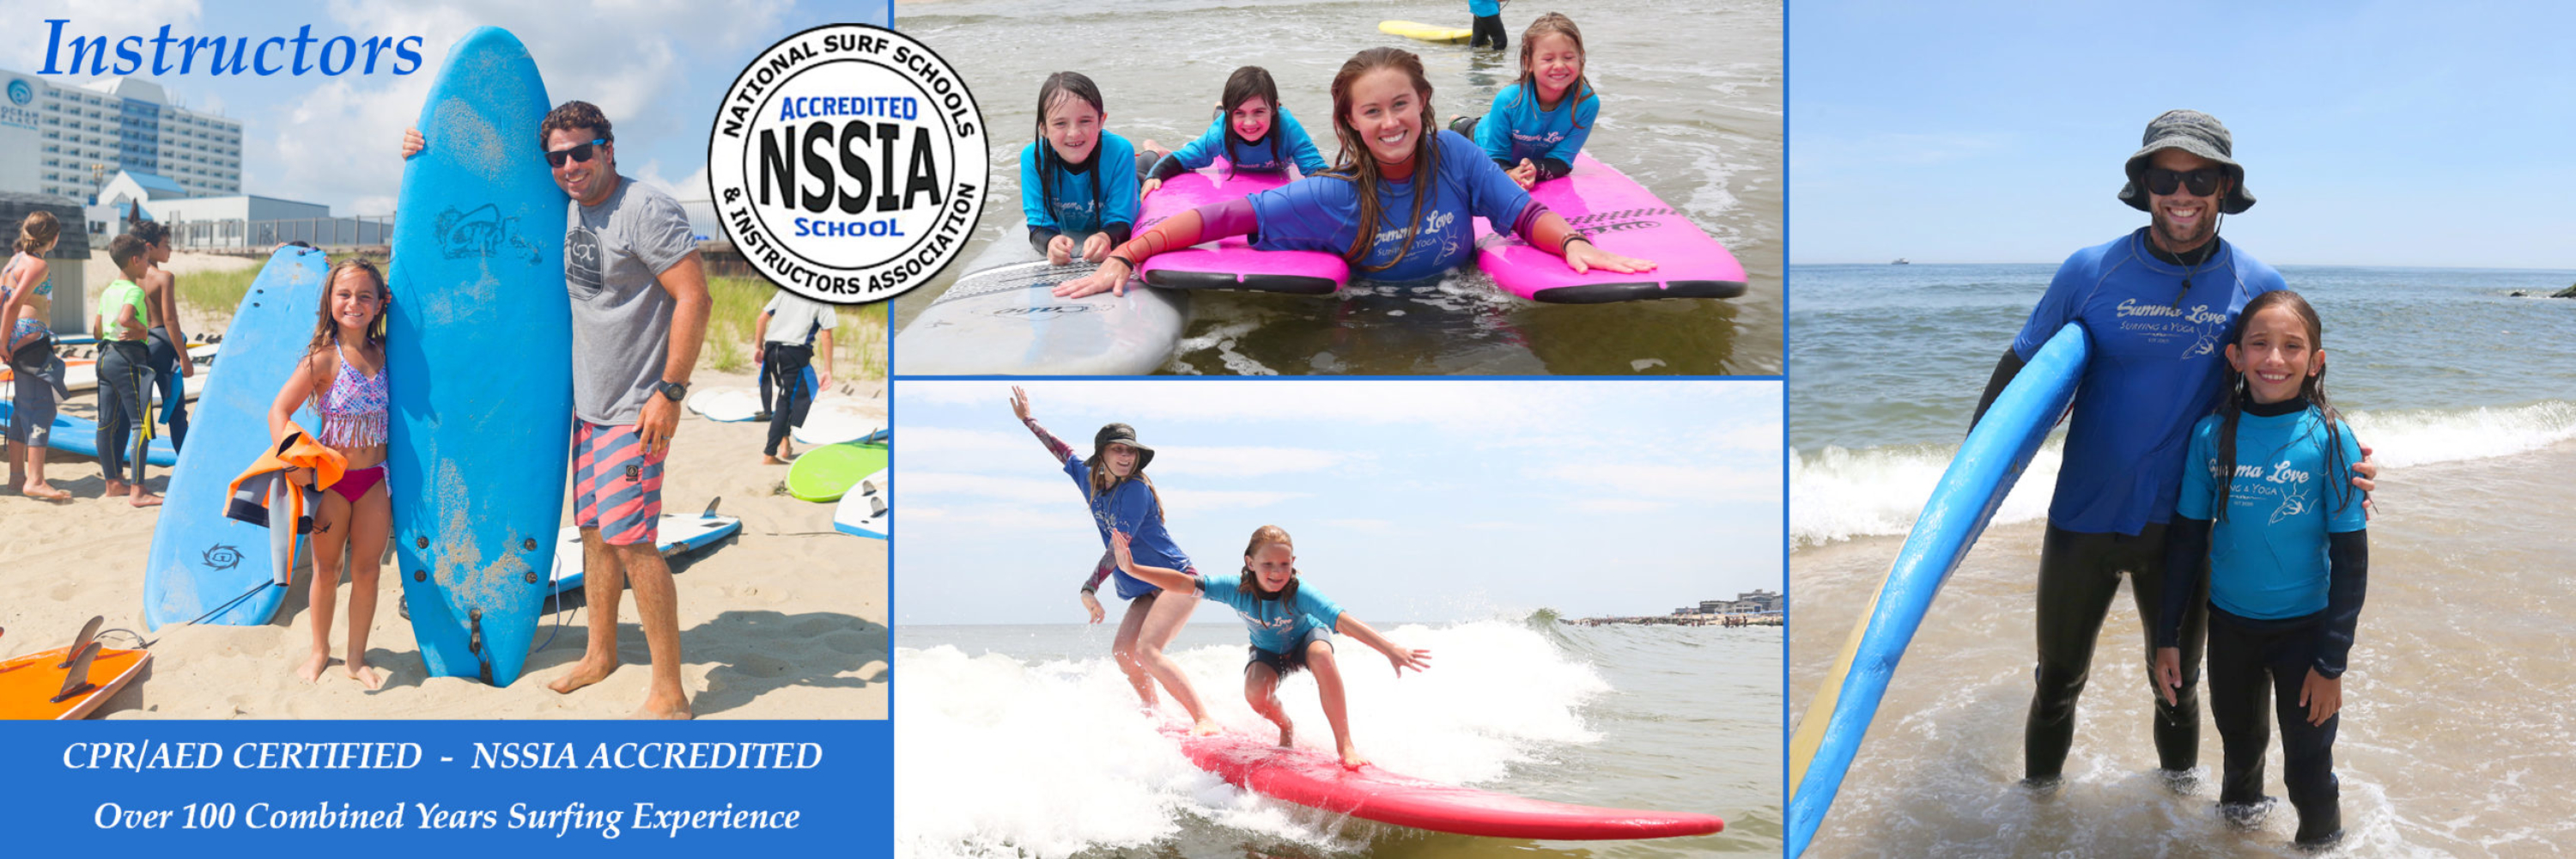 Surfing Instructors, Surf Camp Staff, NJ Surf Instructor, NSSIA Accredited, CPR Certified